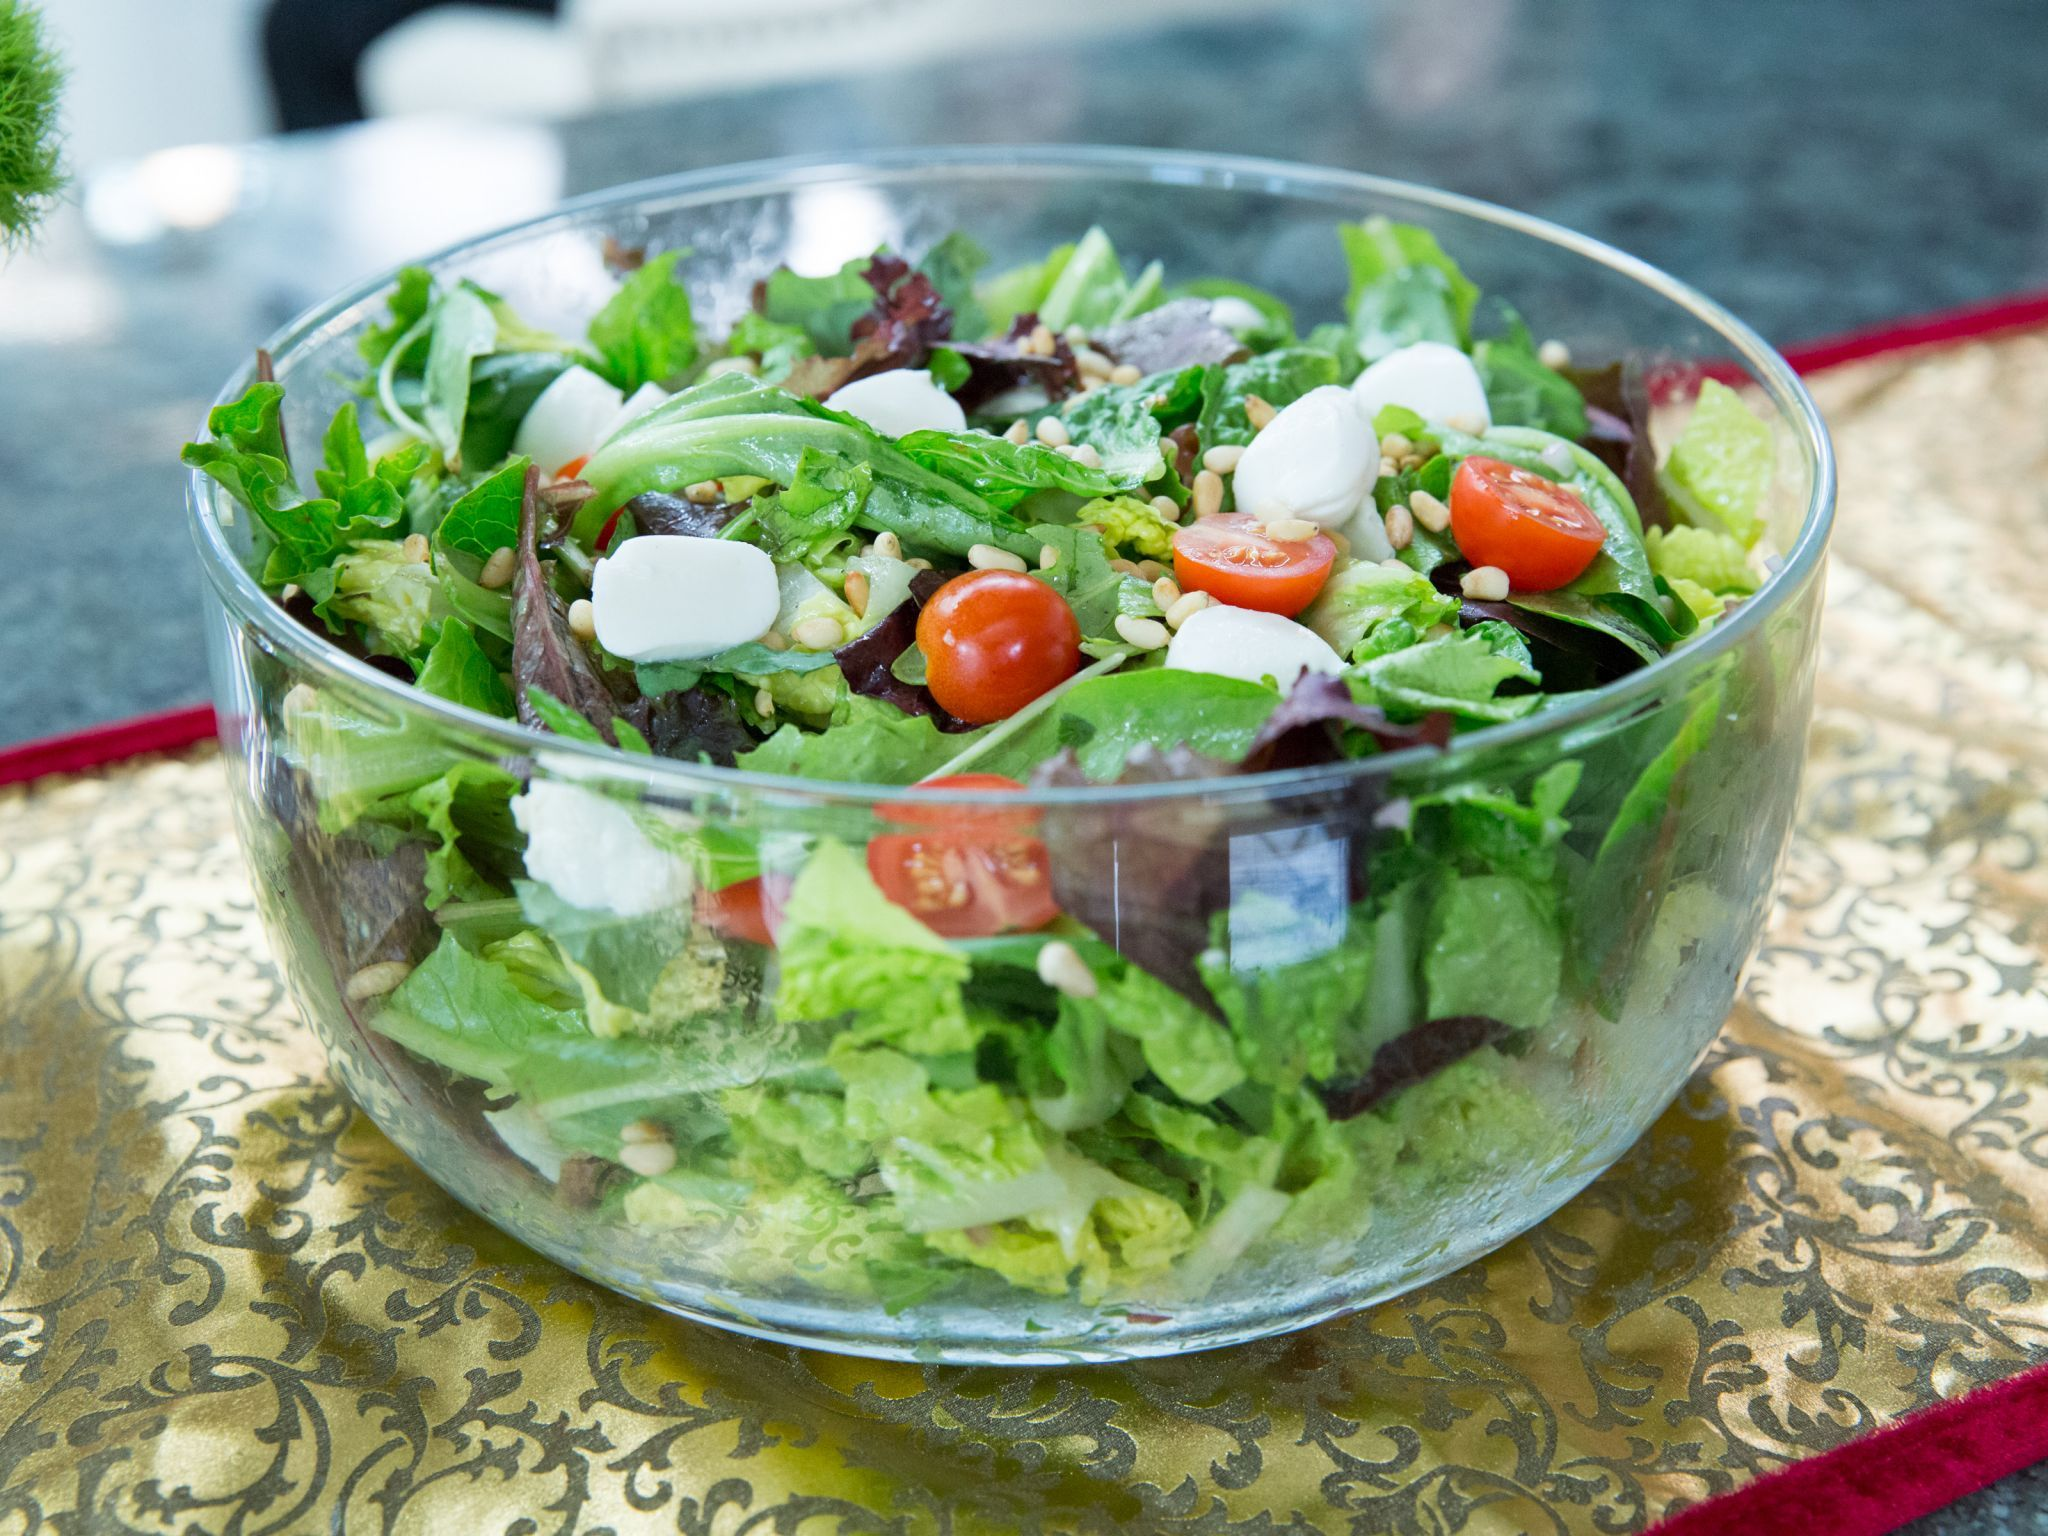 Festive Salad With Tomatoes Basil And Mozzarella In A Creamy Vinaigrette Recipe Food Network Recipes Valerie S Home Cooking Recipes Food Recipes